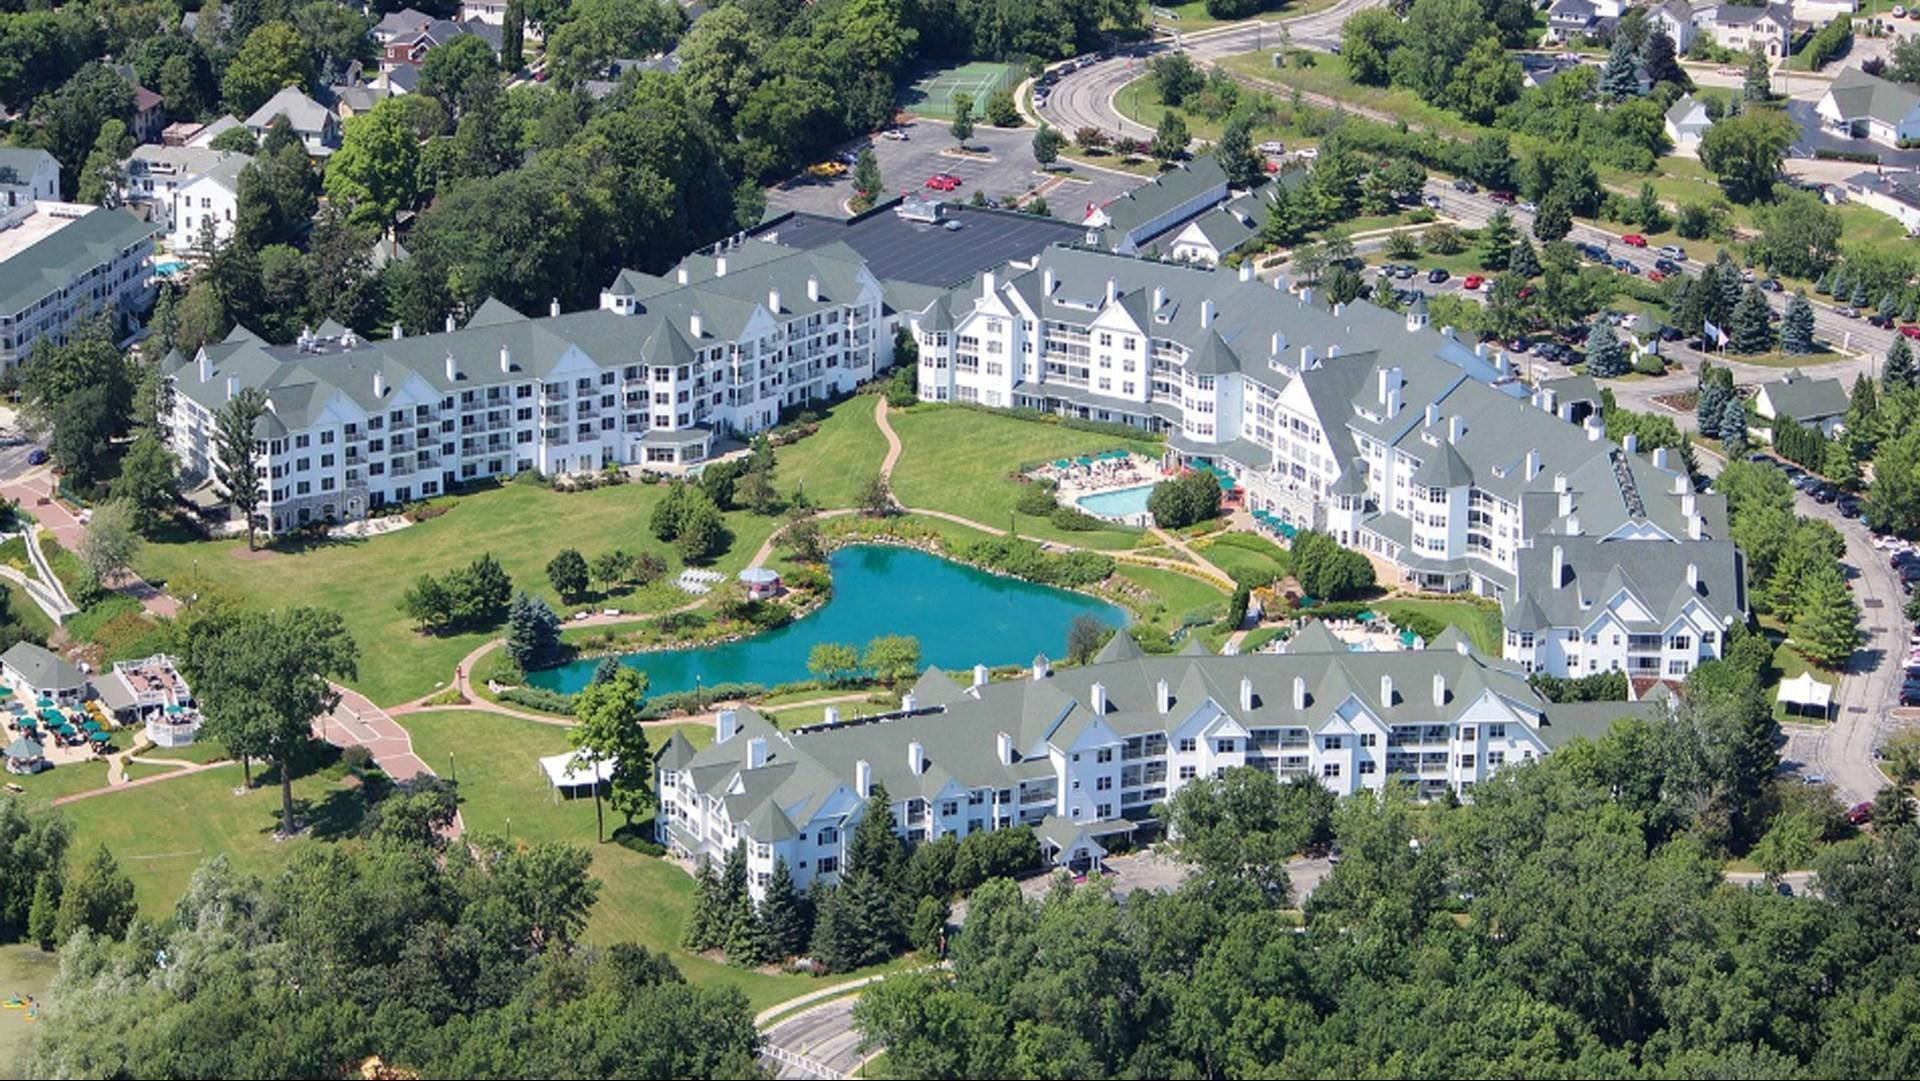 Final Osthoff Resort - A-List Osthoff Resort Positions for Travel Restart; Selects Maestro PMS During Industry Pause for Guest-Focused Mobile Services and Integrated Operations - Innovative Property Management Software Solutions Powering Hotels, Resorts & Multi‑Property Groups.